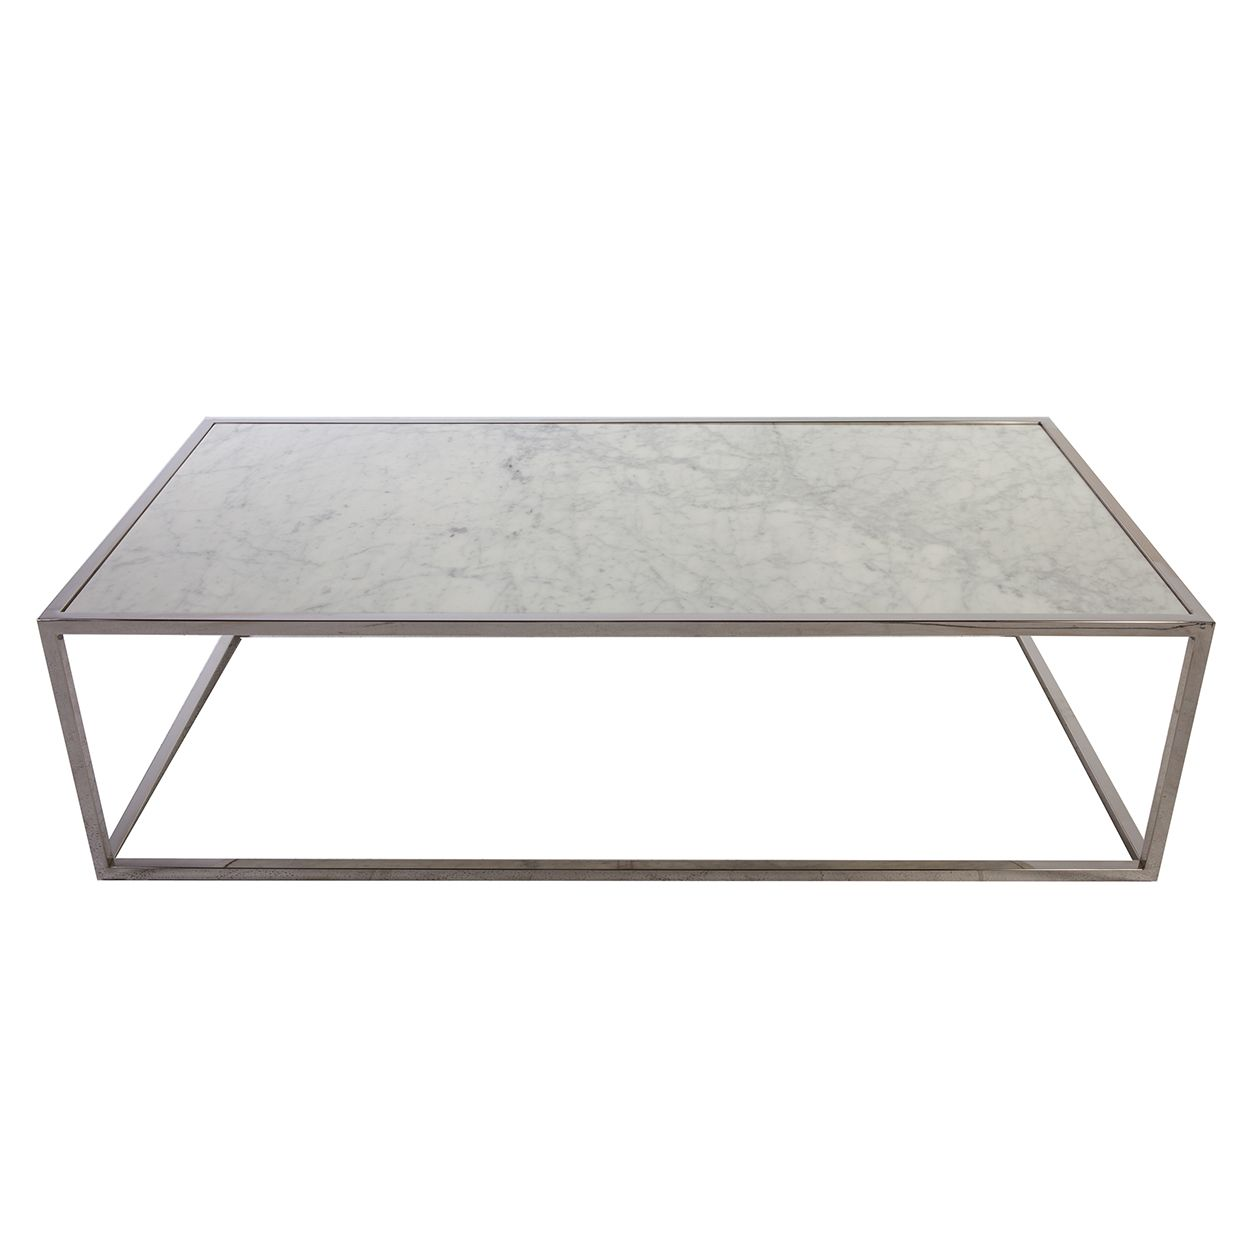 The Tynd Marble Coffee Tableu0027s Long And Slender Design Is Topped With A  Carrara Style, Solid Marble Table Top. Each Marble Slab Is Unique, And No  Two Are ...